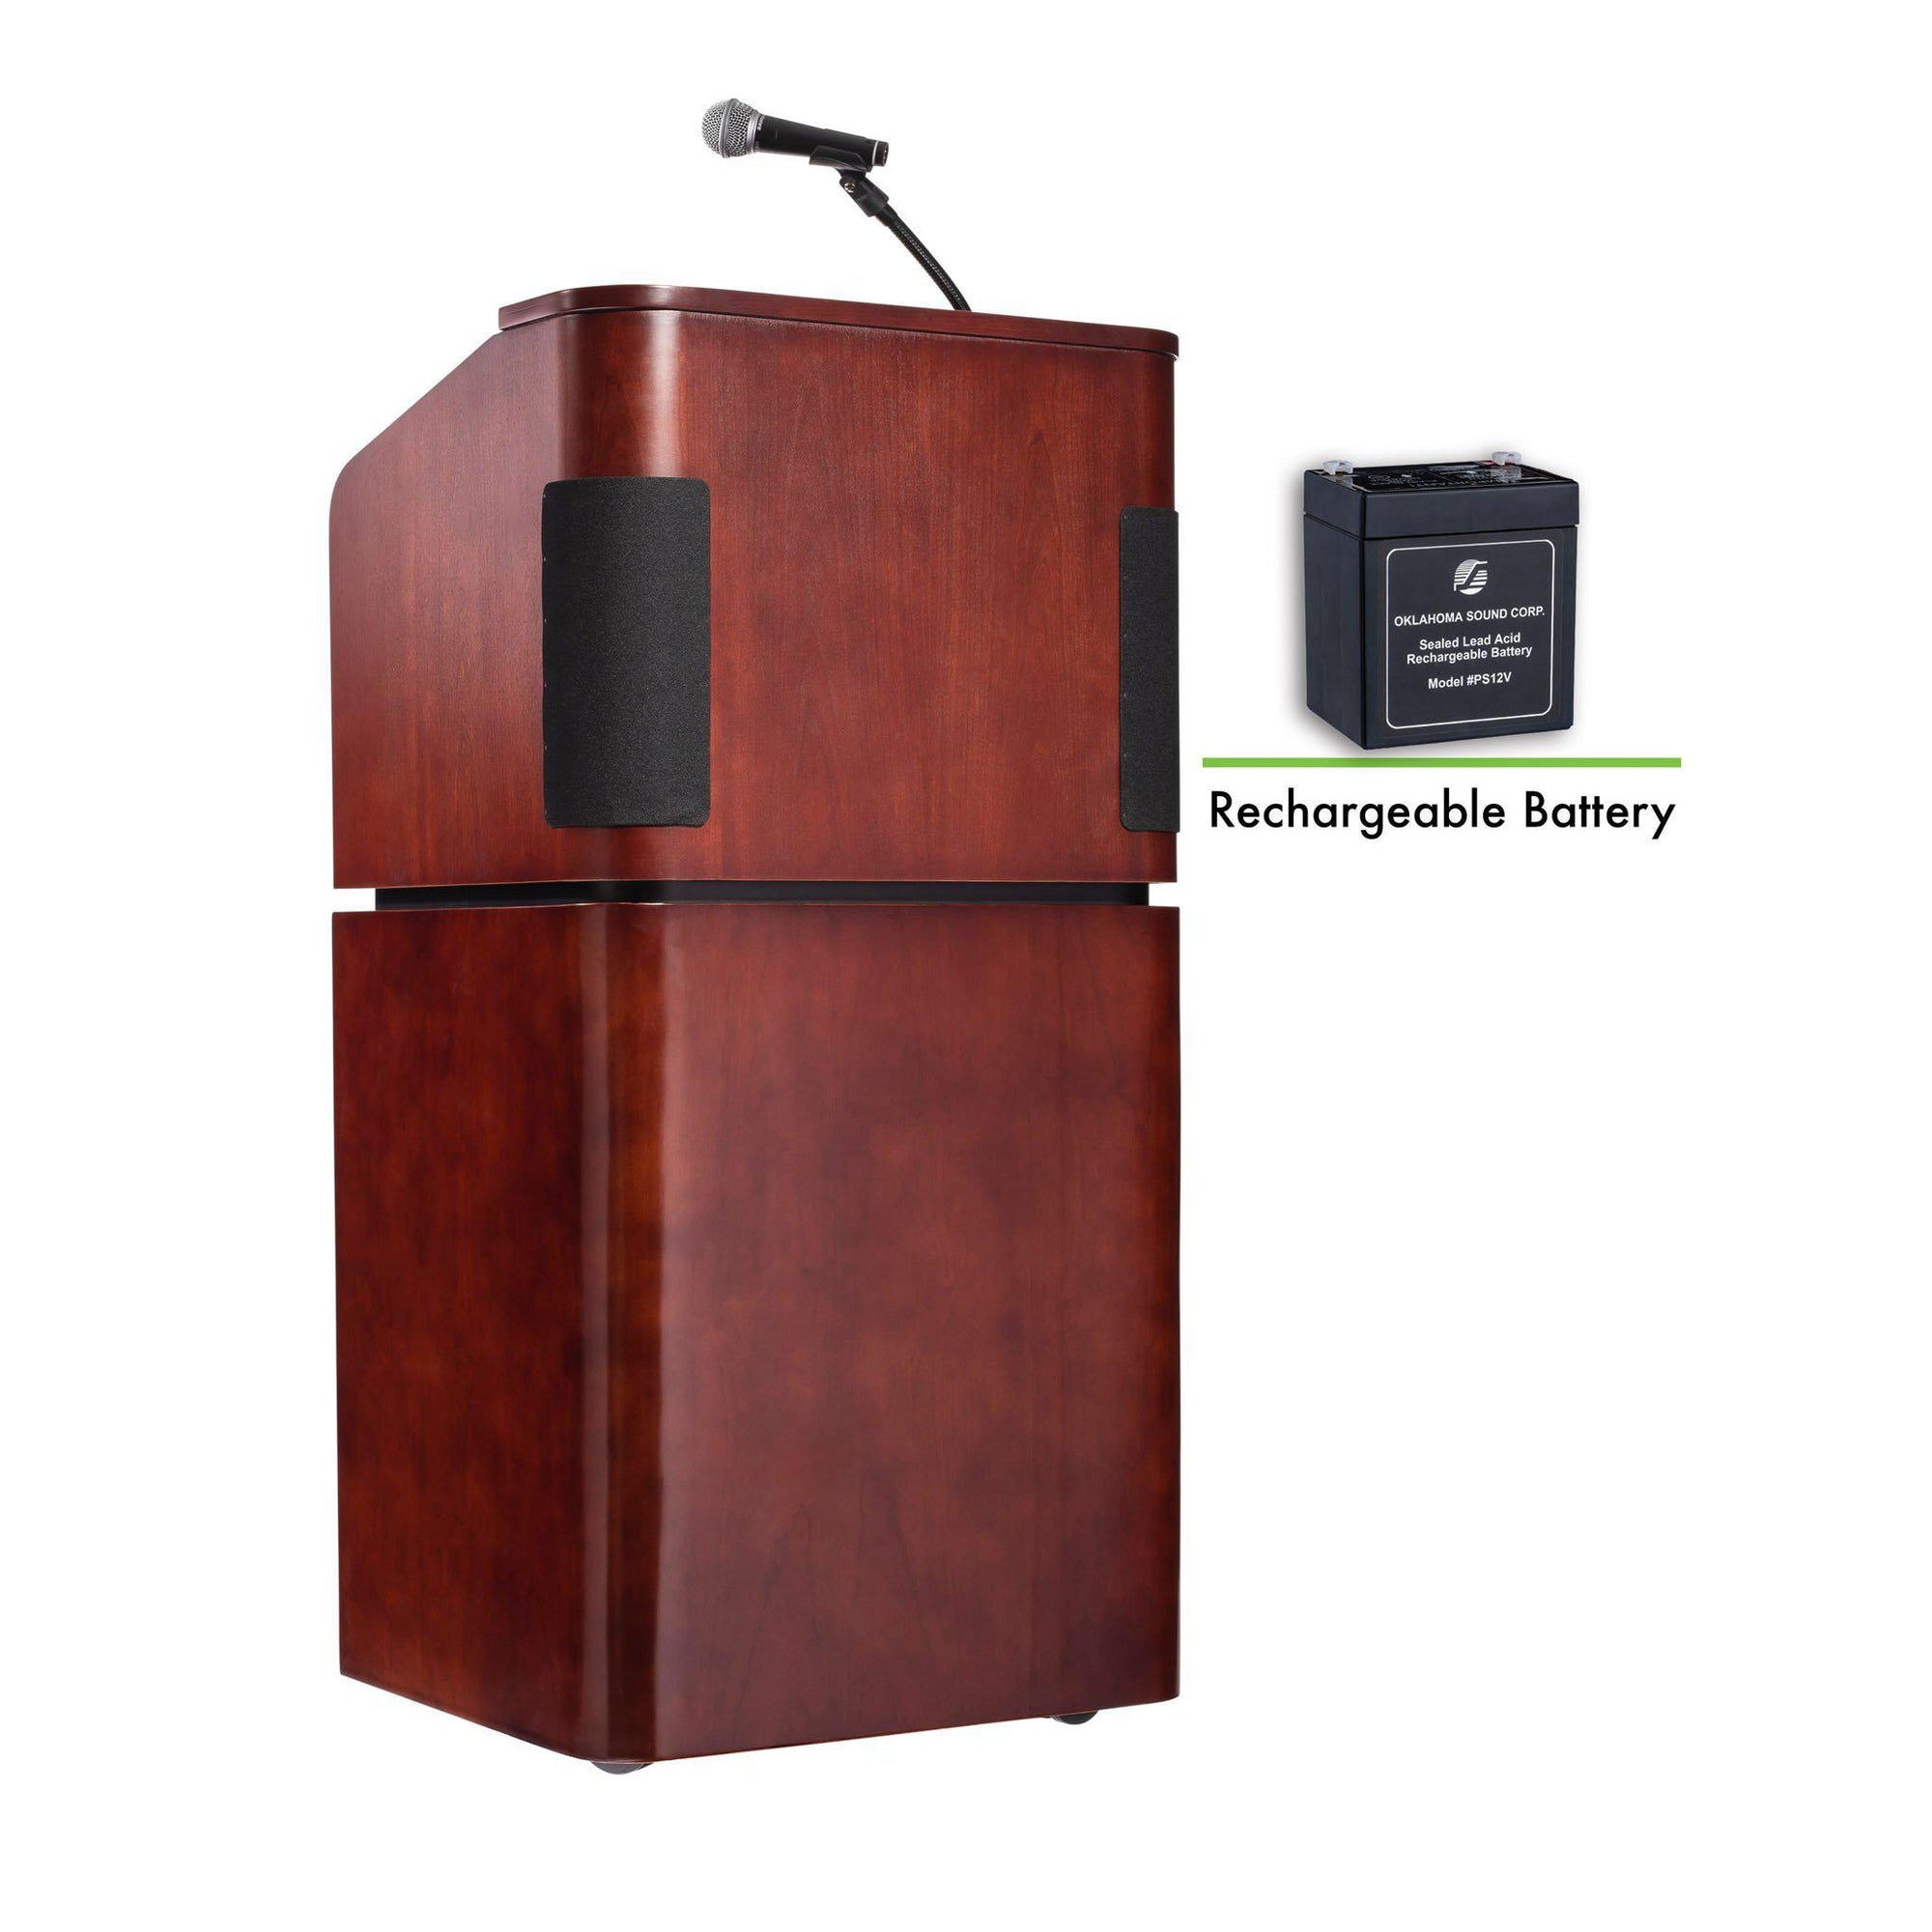 Contemporary Veneer Combo Sound Lectern and Rechargeable Battery, Mahogany on Walnut